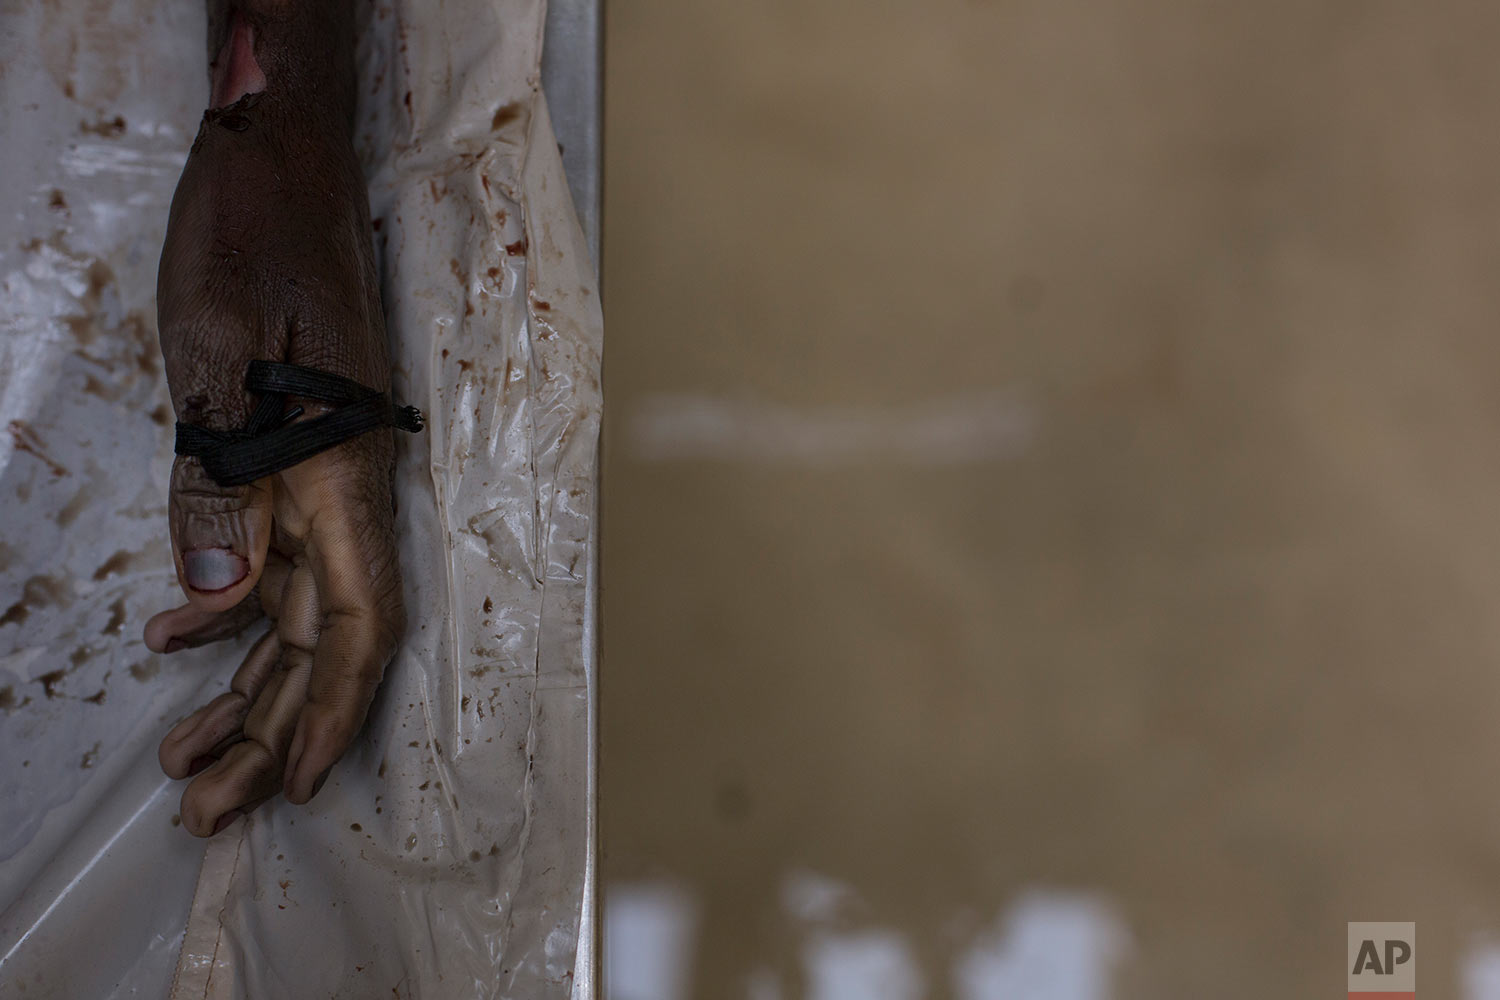 In this Monday, April 16, 2018 photo, the hand of an unidentified male is seen at a mortuary in Johannesburg during forensic examination. (AP Photo/Bram Janssen)